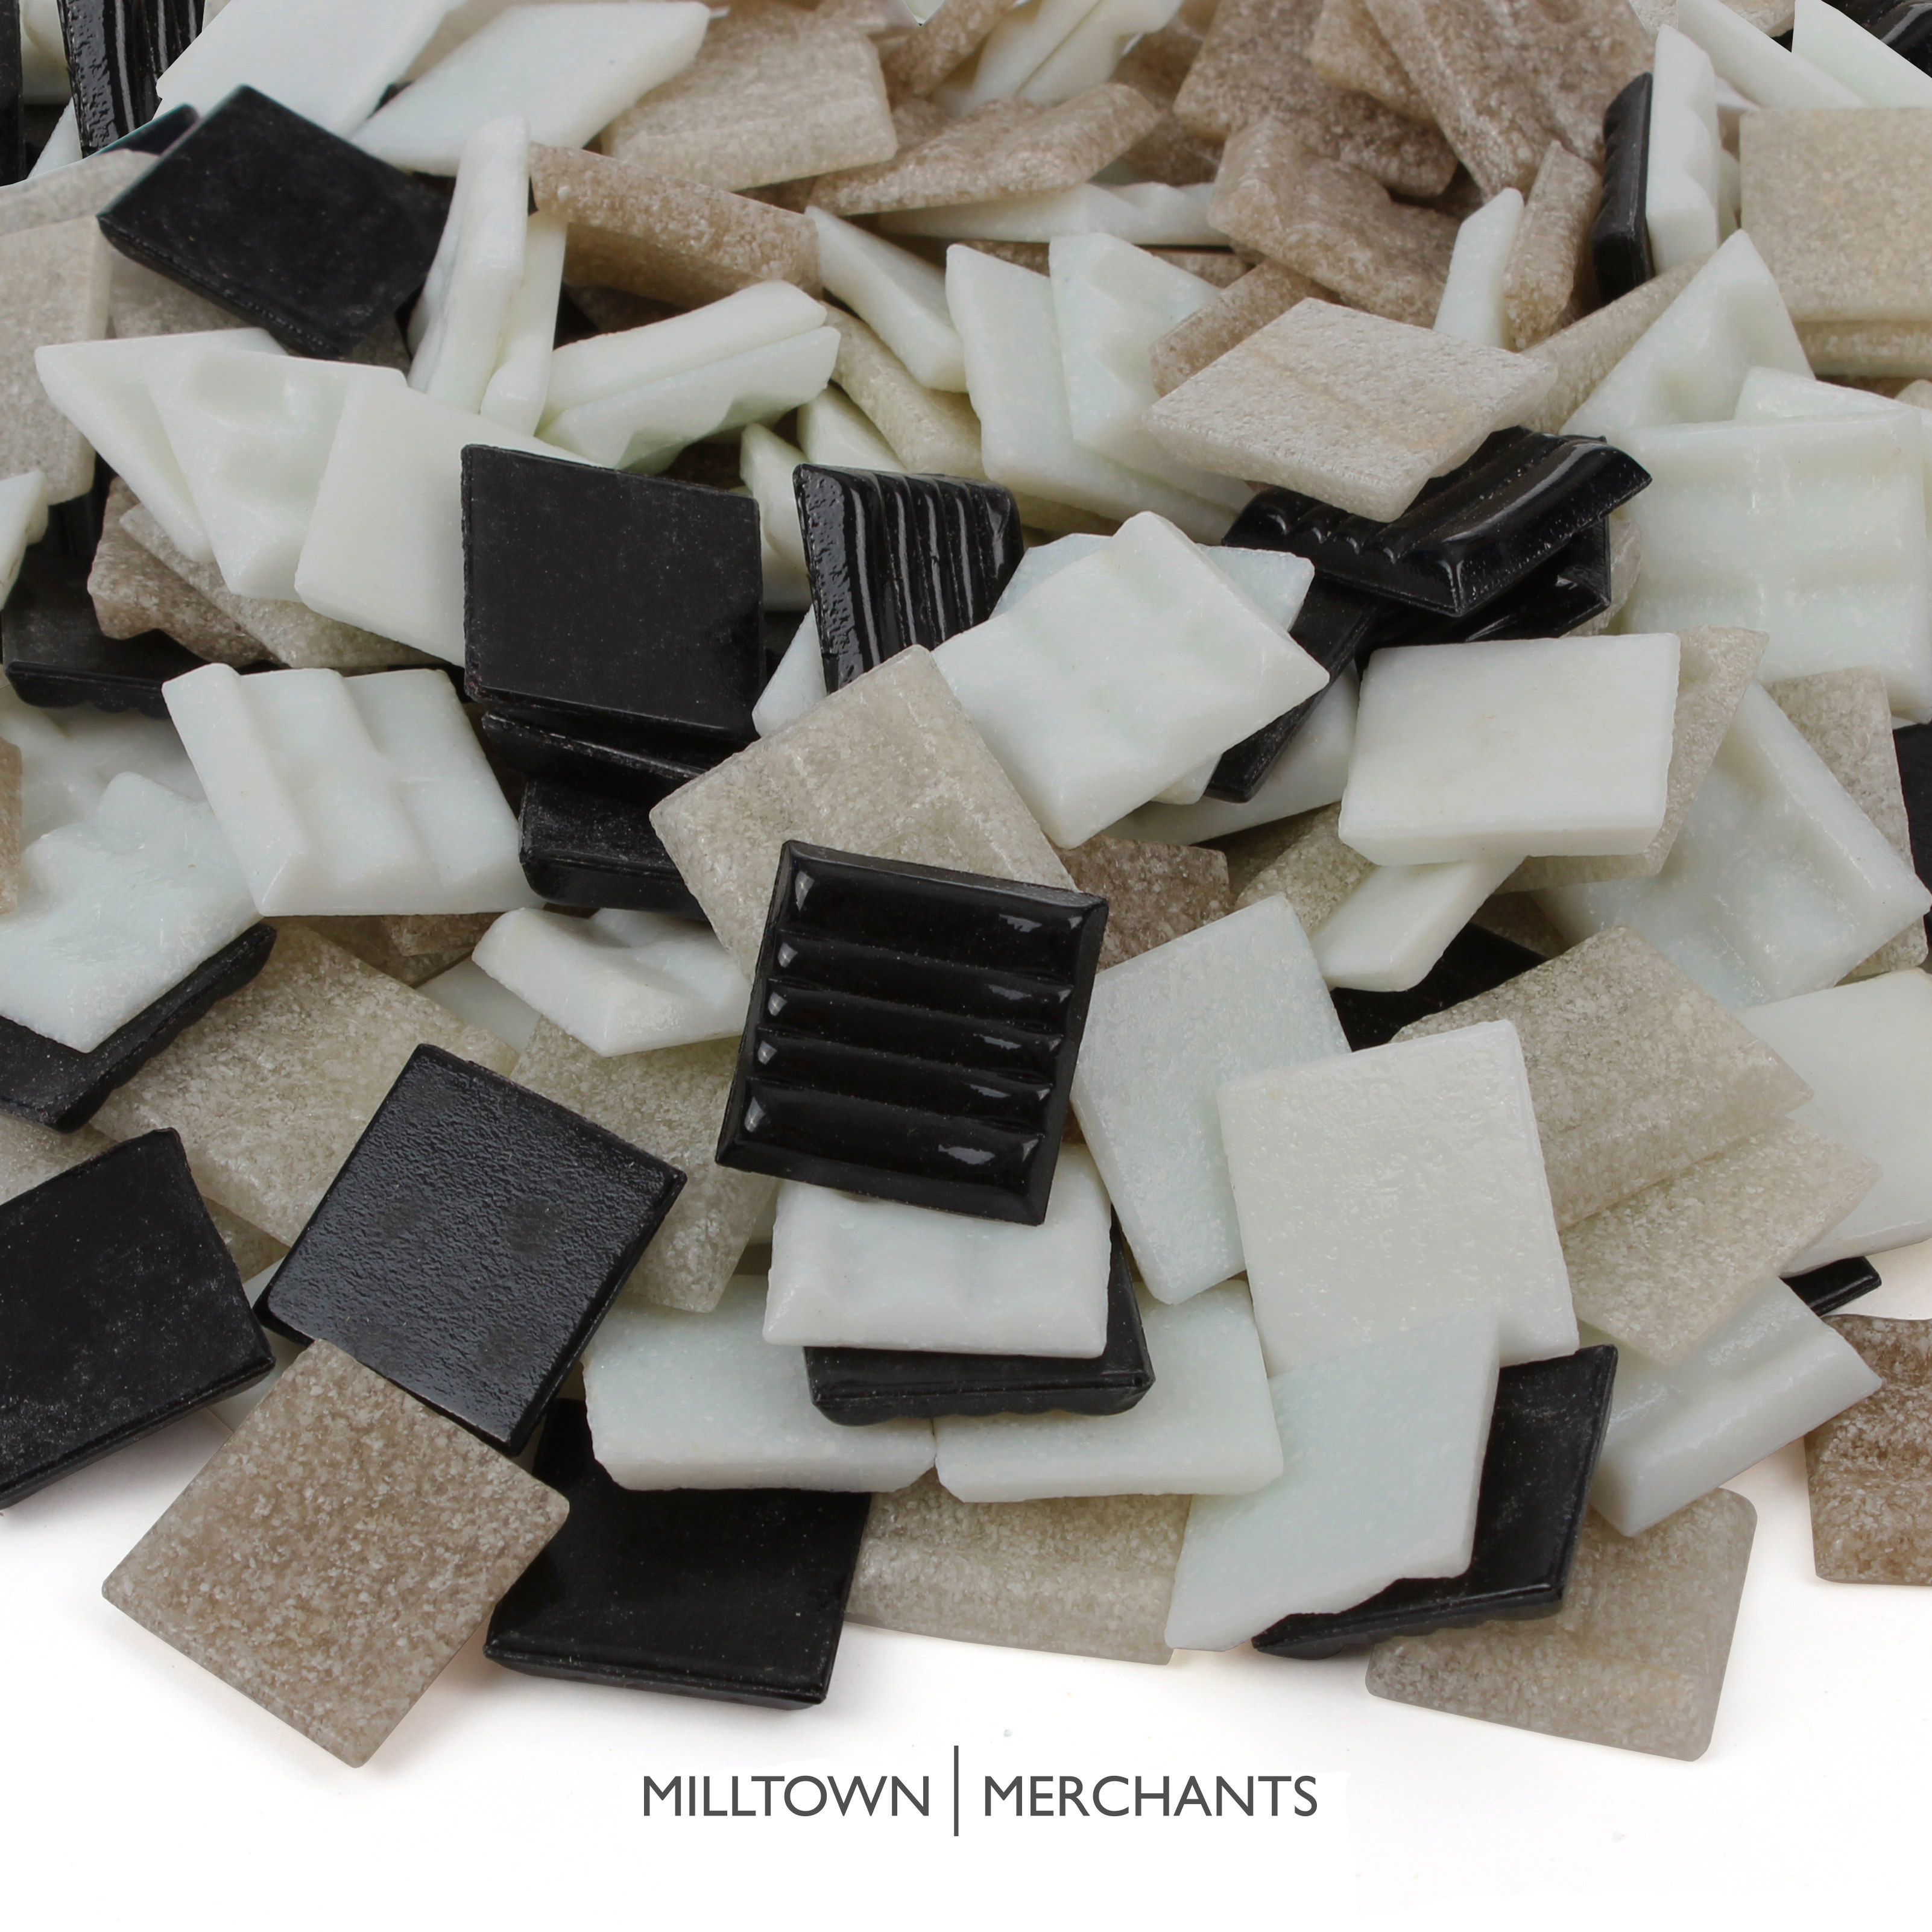 Milltown Merchants 3/4 Inch (20mm) Venetian Mosaic Tile - Bulk Blend Mosaic Tiles - Tile Assortment For Backsplash, Murals, and Mosaics